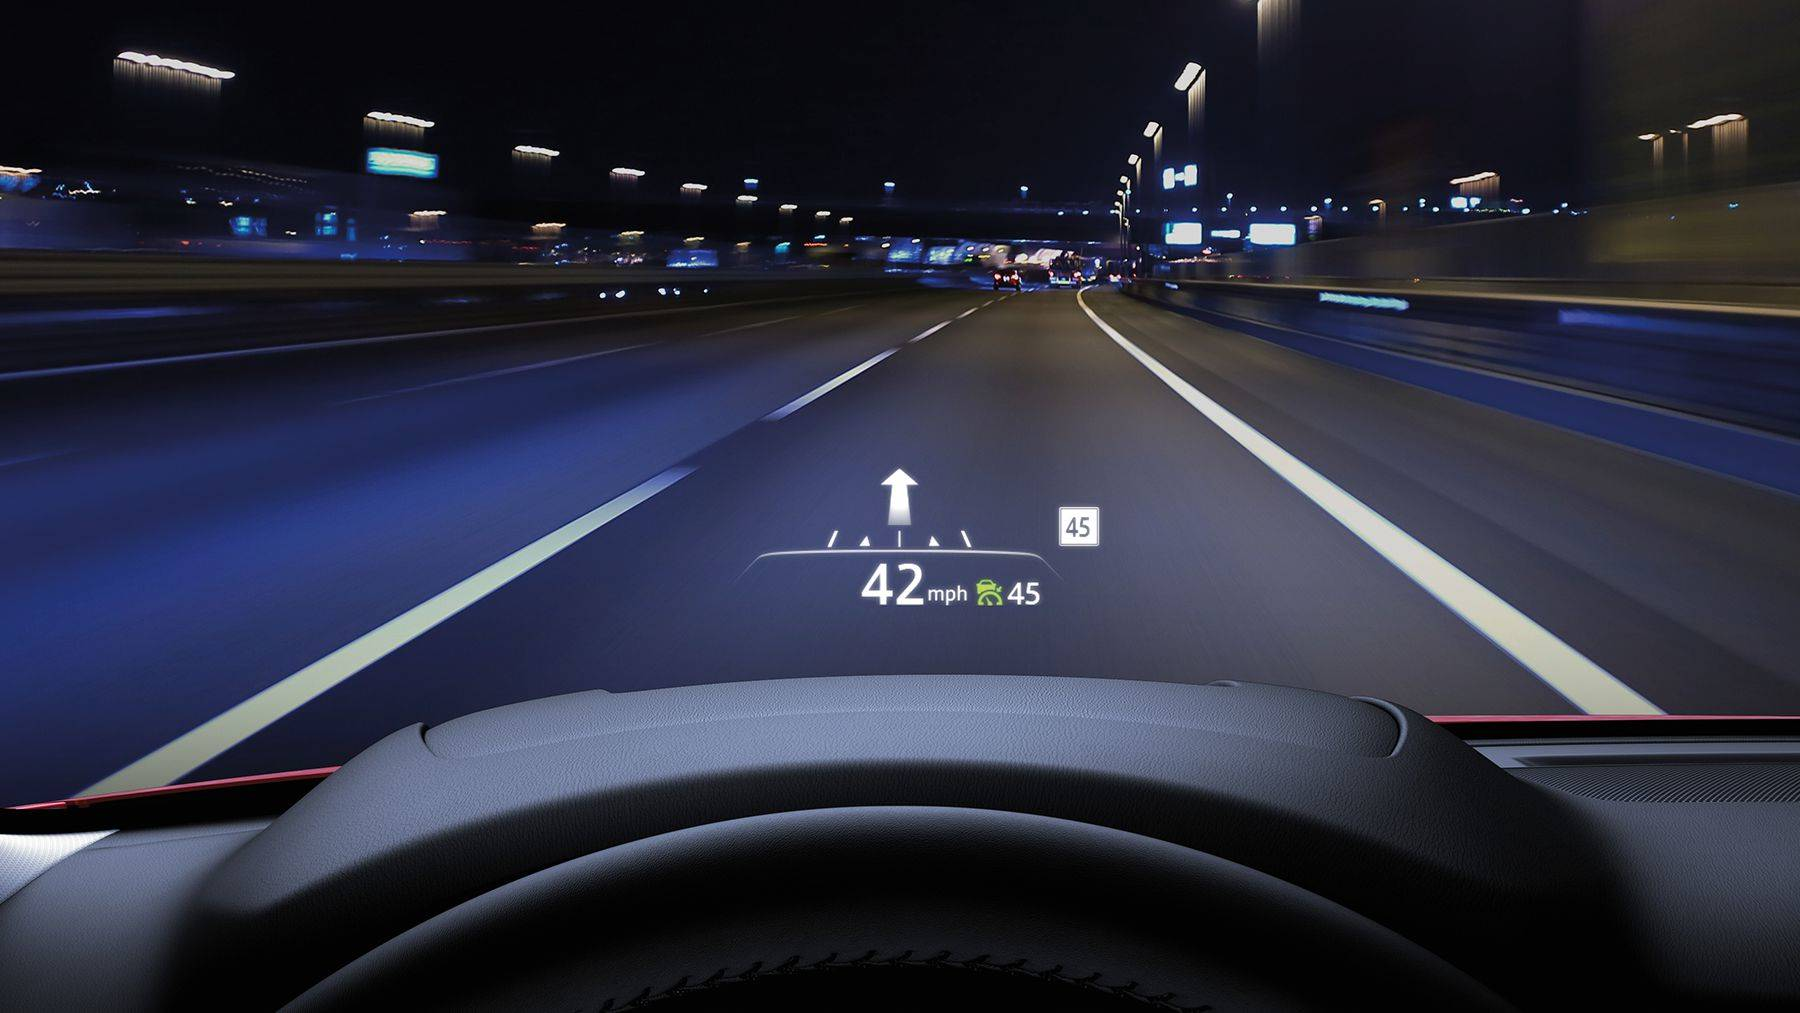 The Mazda CX-5's Cutting-Edge Active Driving Display